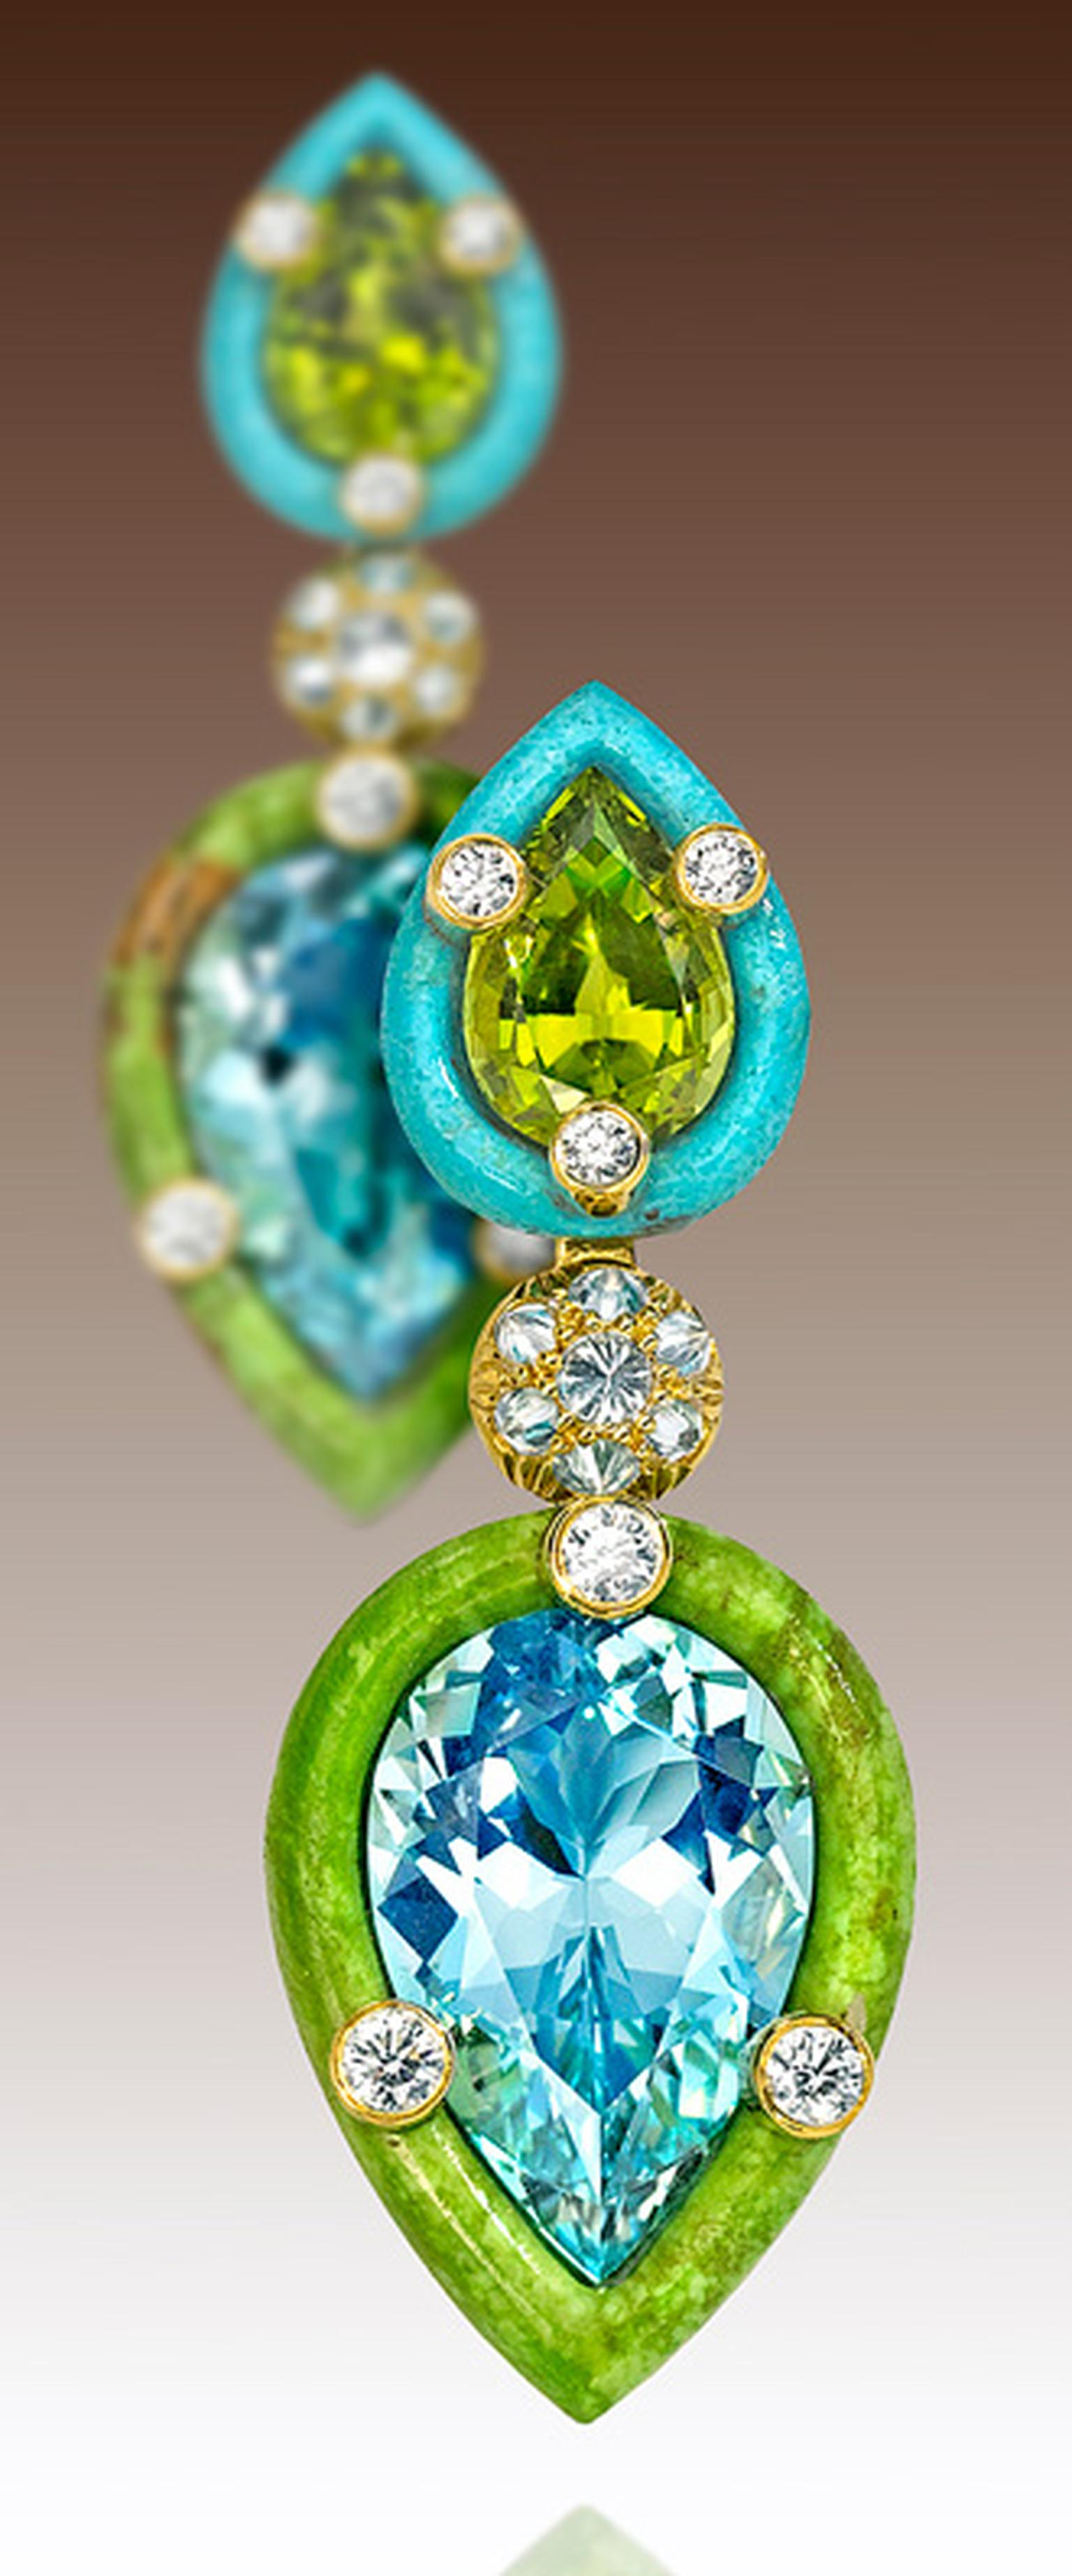 Nicholas Varney 2013 'Duo' earrings featuring two pear-shape aquamarines set into hand-carved gaspeite, paired with two pear-shaped peridots set into hand-carved turquoise and joined by yellow gold and diamonds